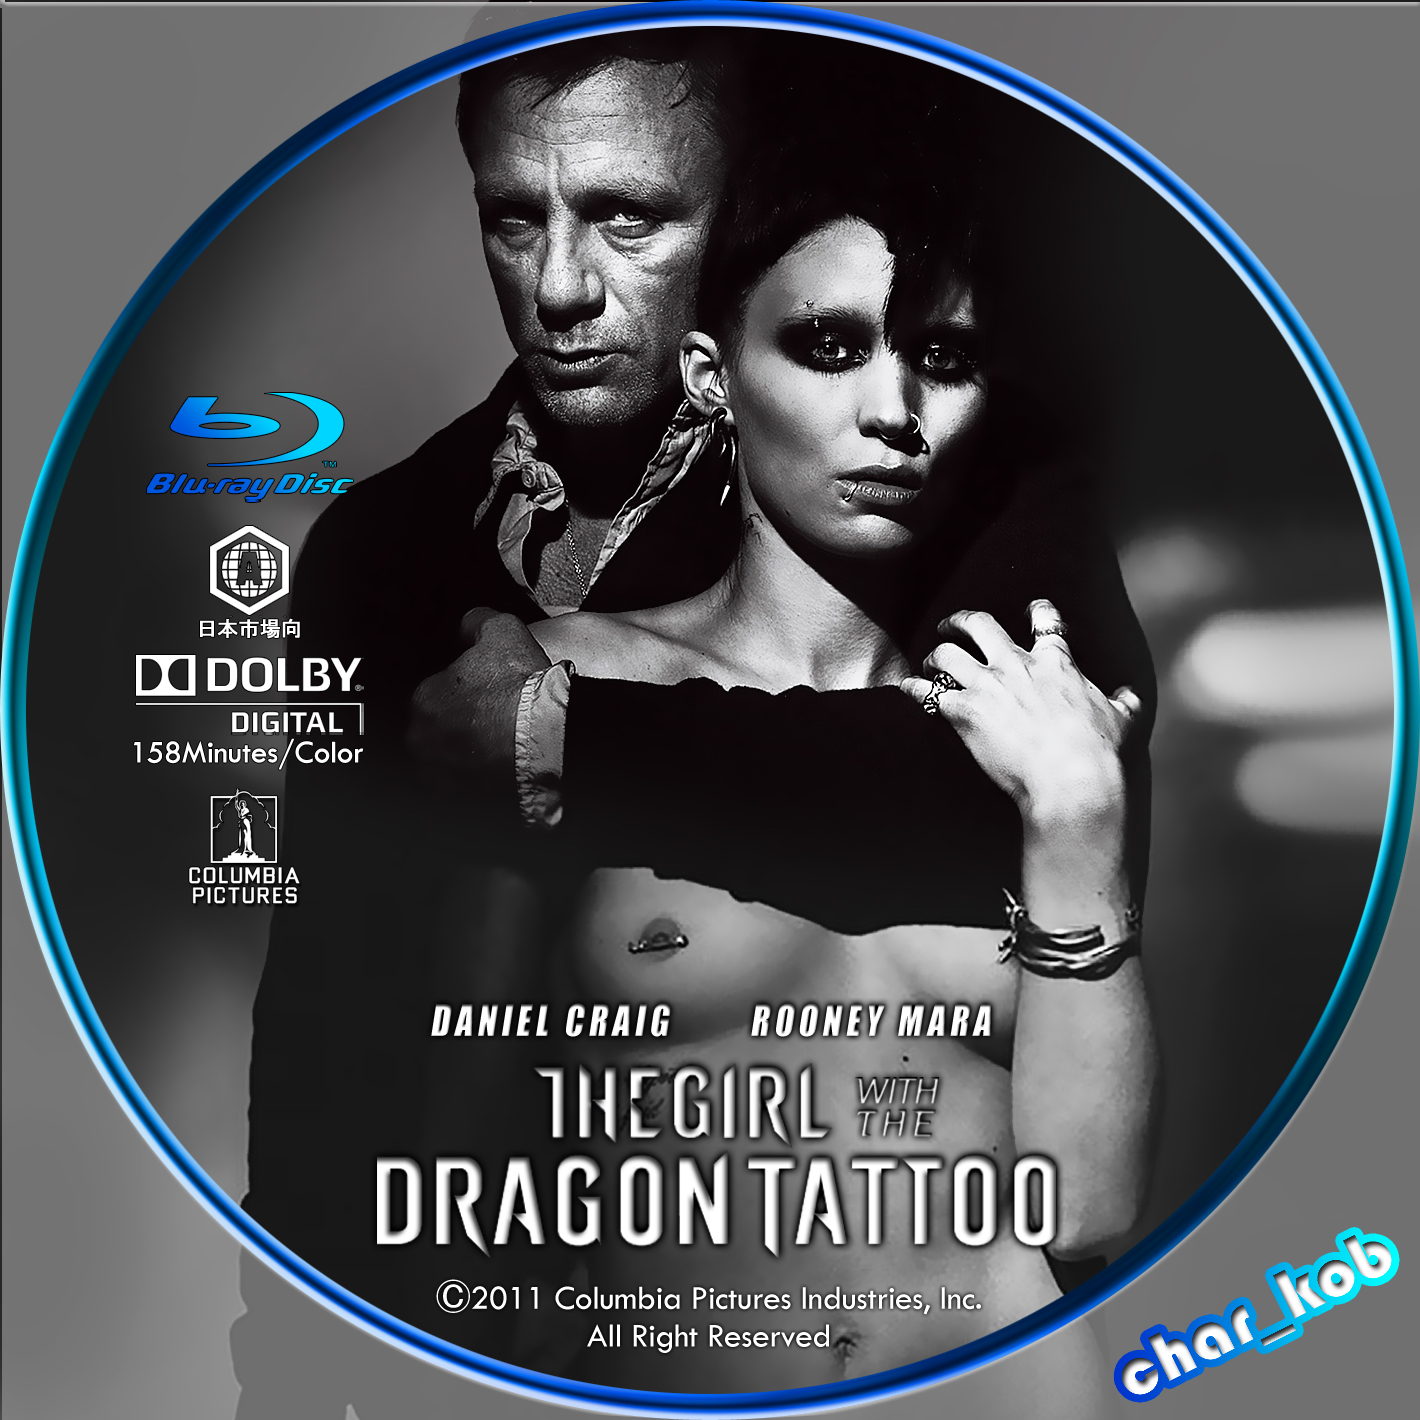 Dvd char kob 39 s custom dvd label for The girl with the dragon tattoo series order